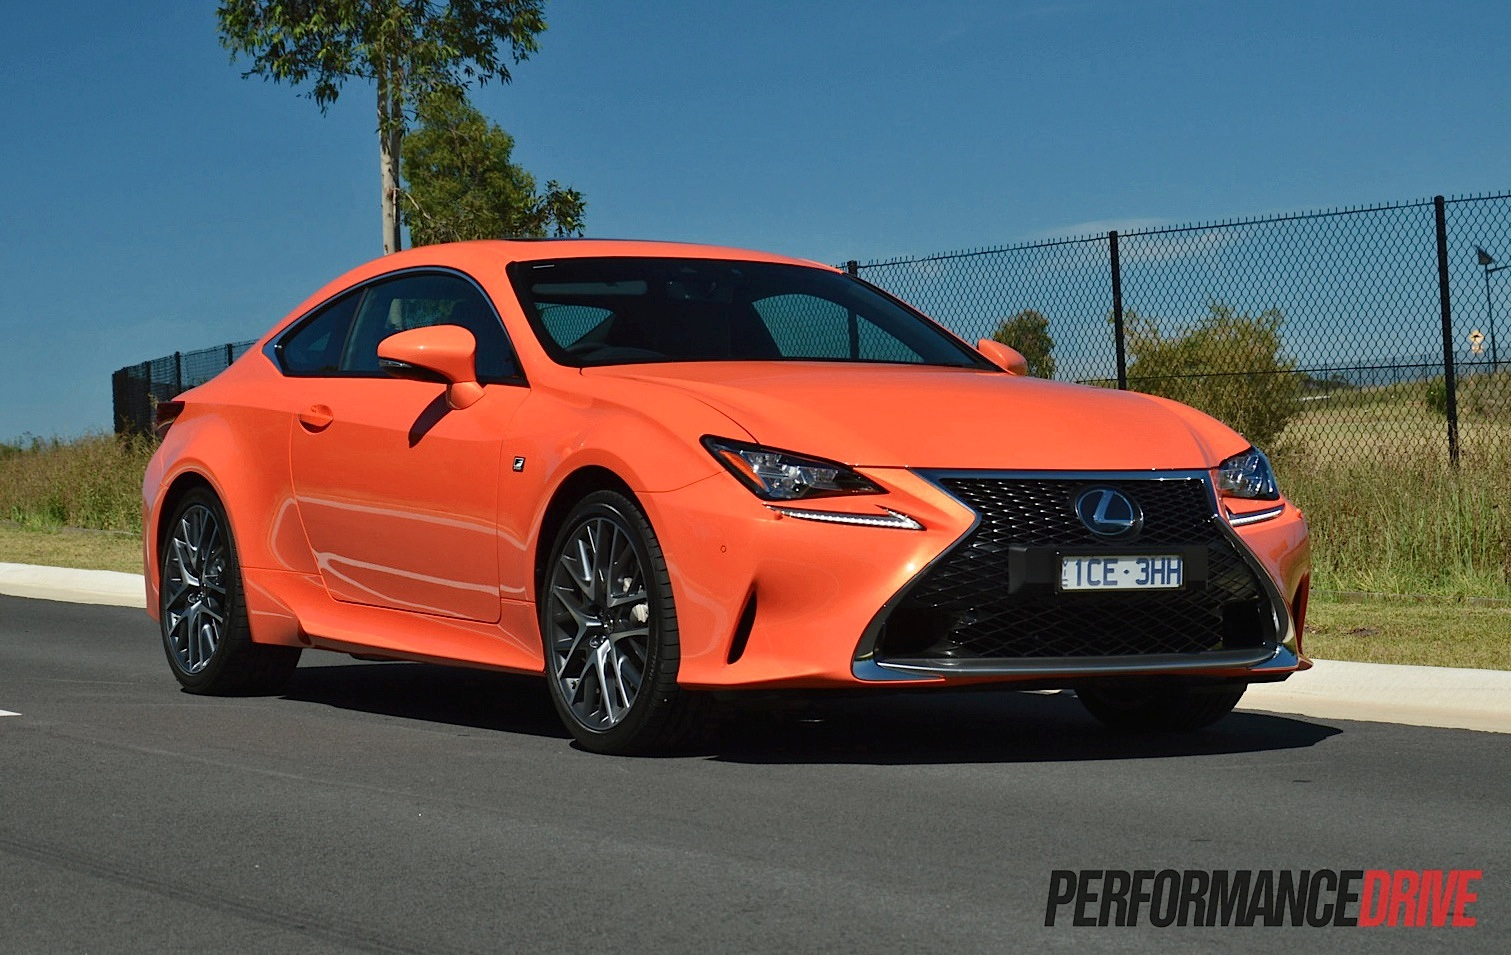 New 2015 Lexus RC 350 F Sport Review Video  PerformanceDrive